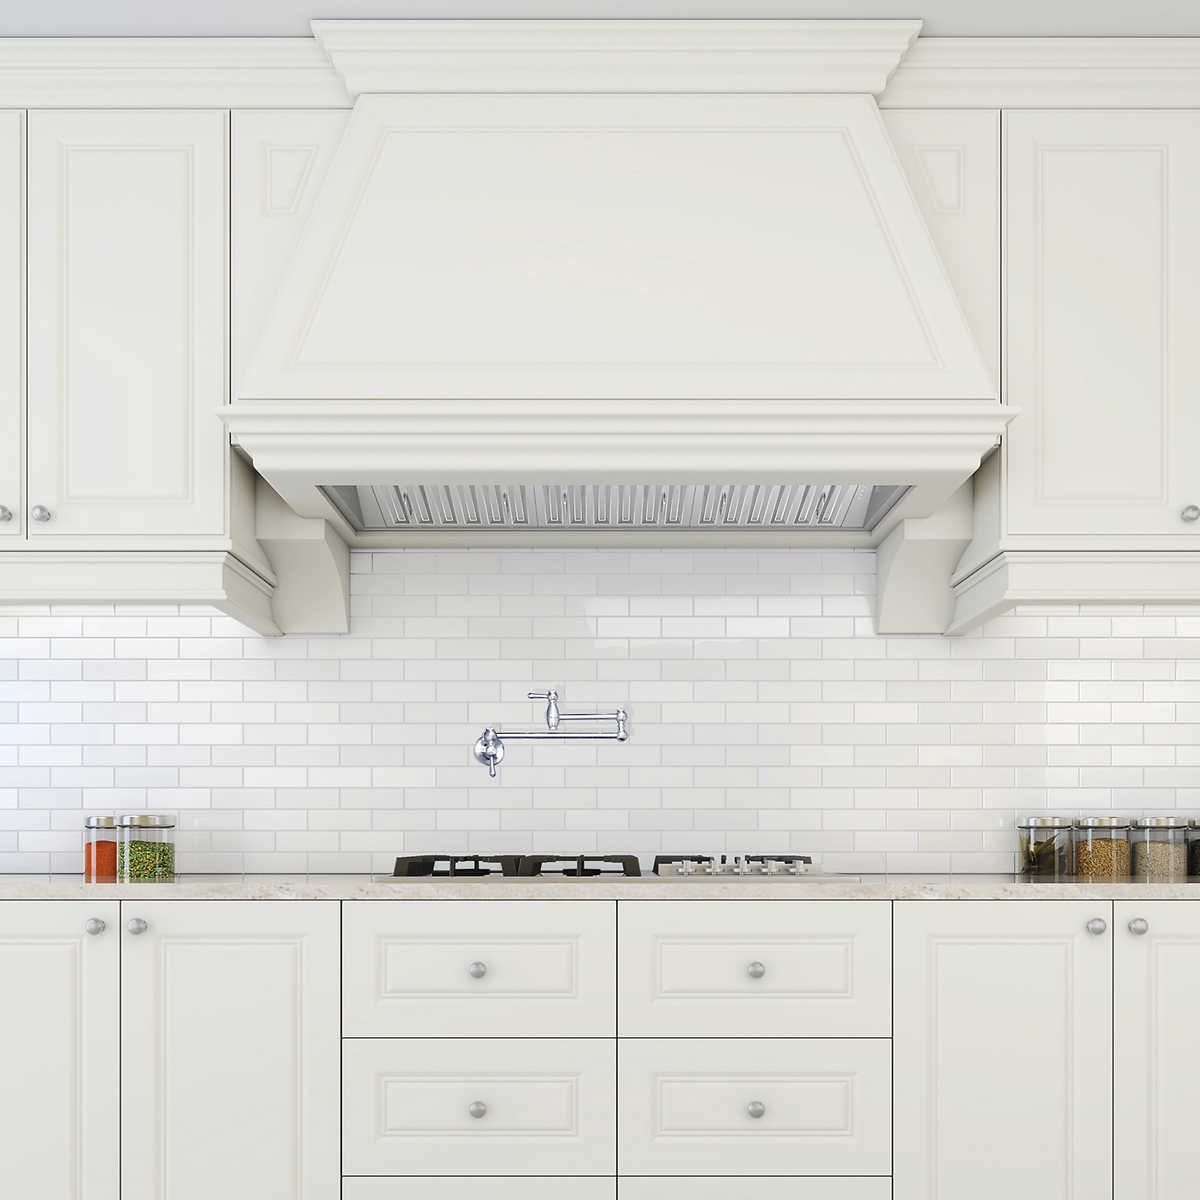 Ancona Pro Insert 48 Range Hood With Led Lights Range Hood Kitchen Cabinet Design Kitchen Vent